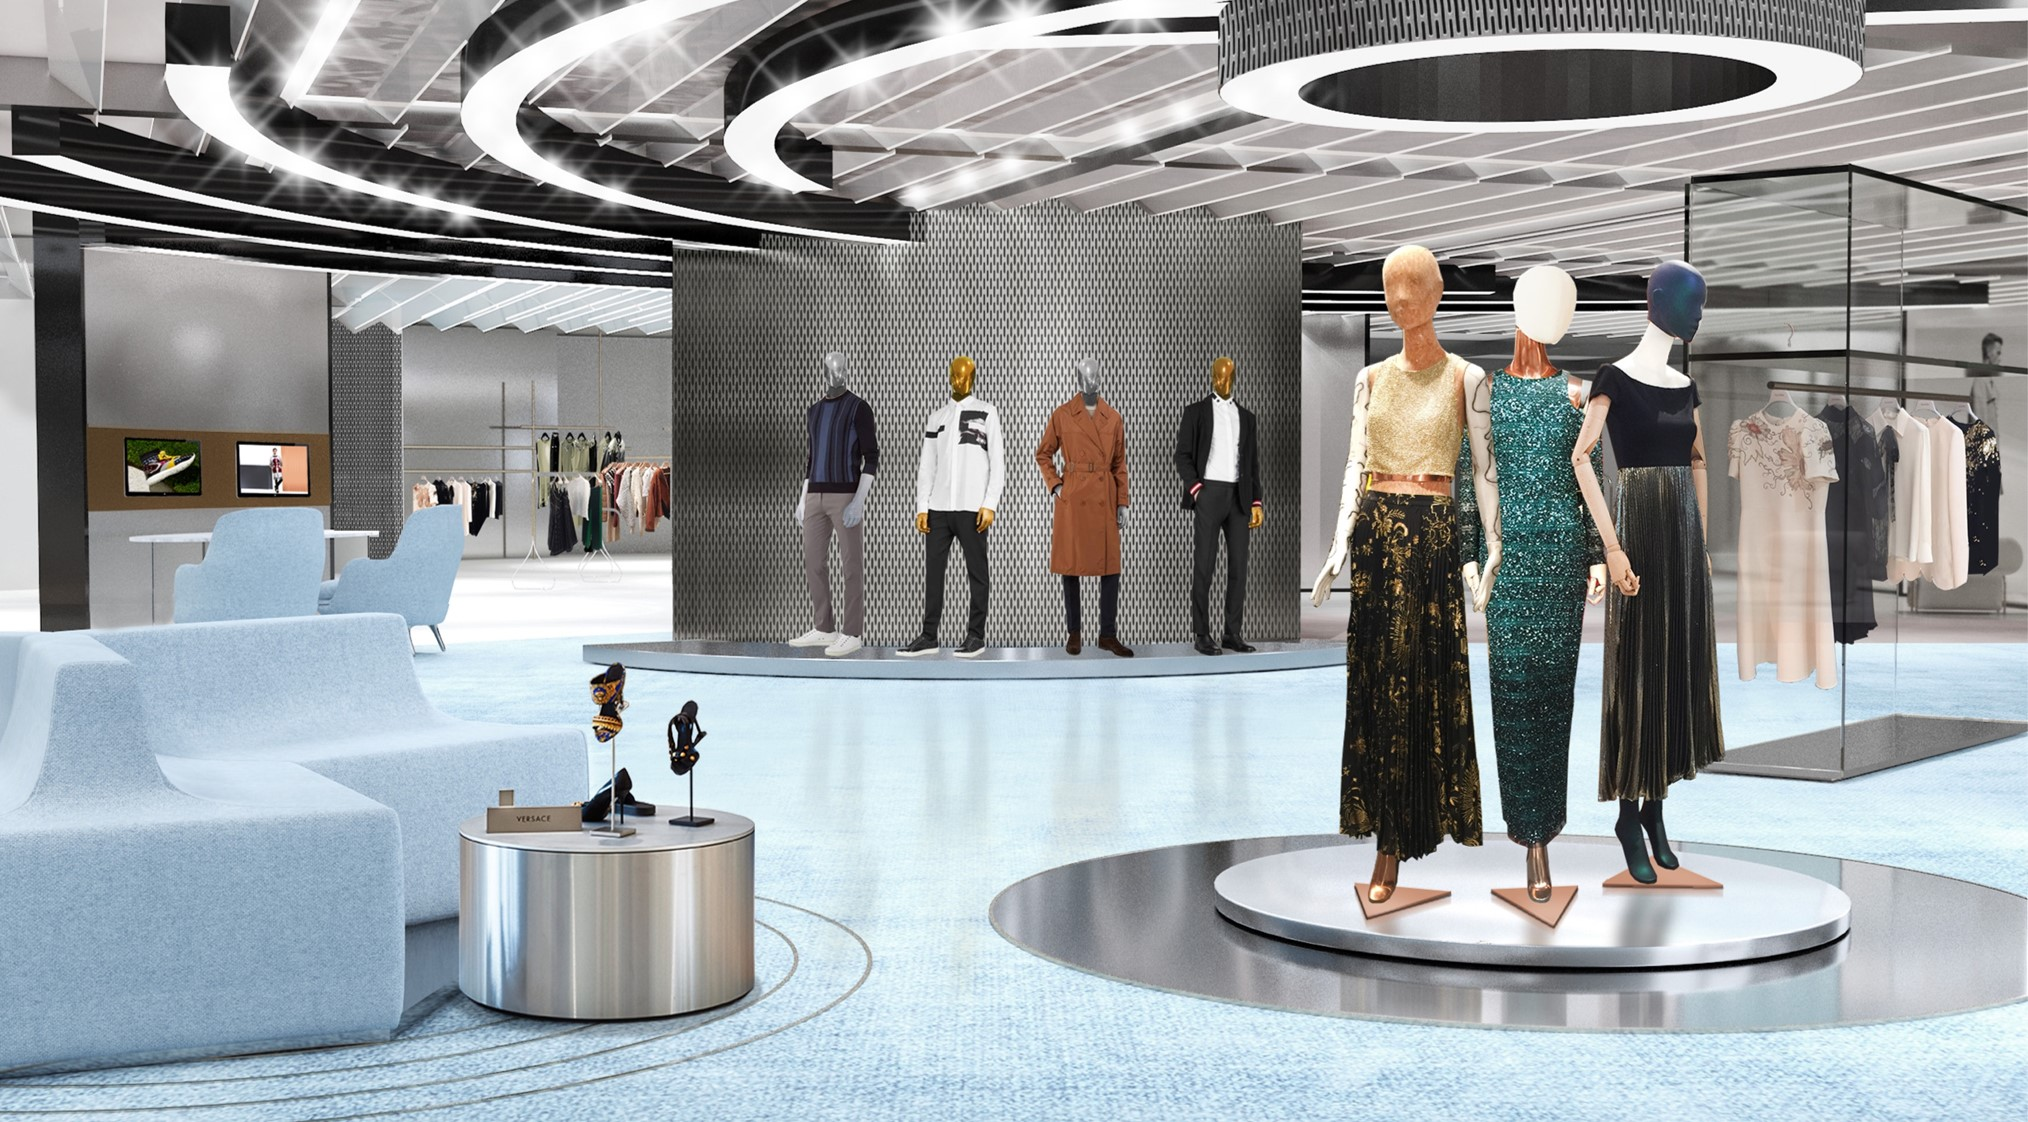 A rendering of the new store which has a lounge that is open to encourage all shoppers whether VIP or first timers to utilize their stylist services.